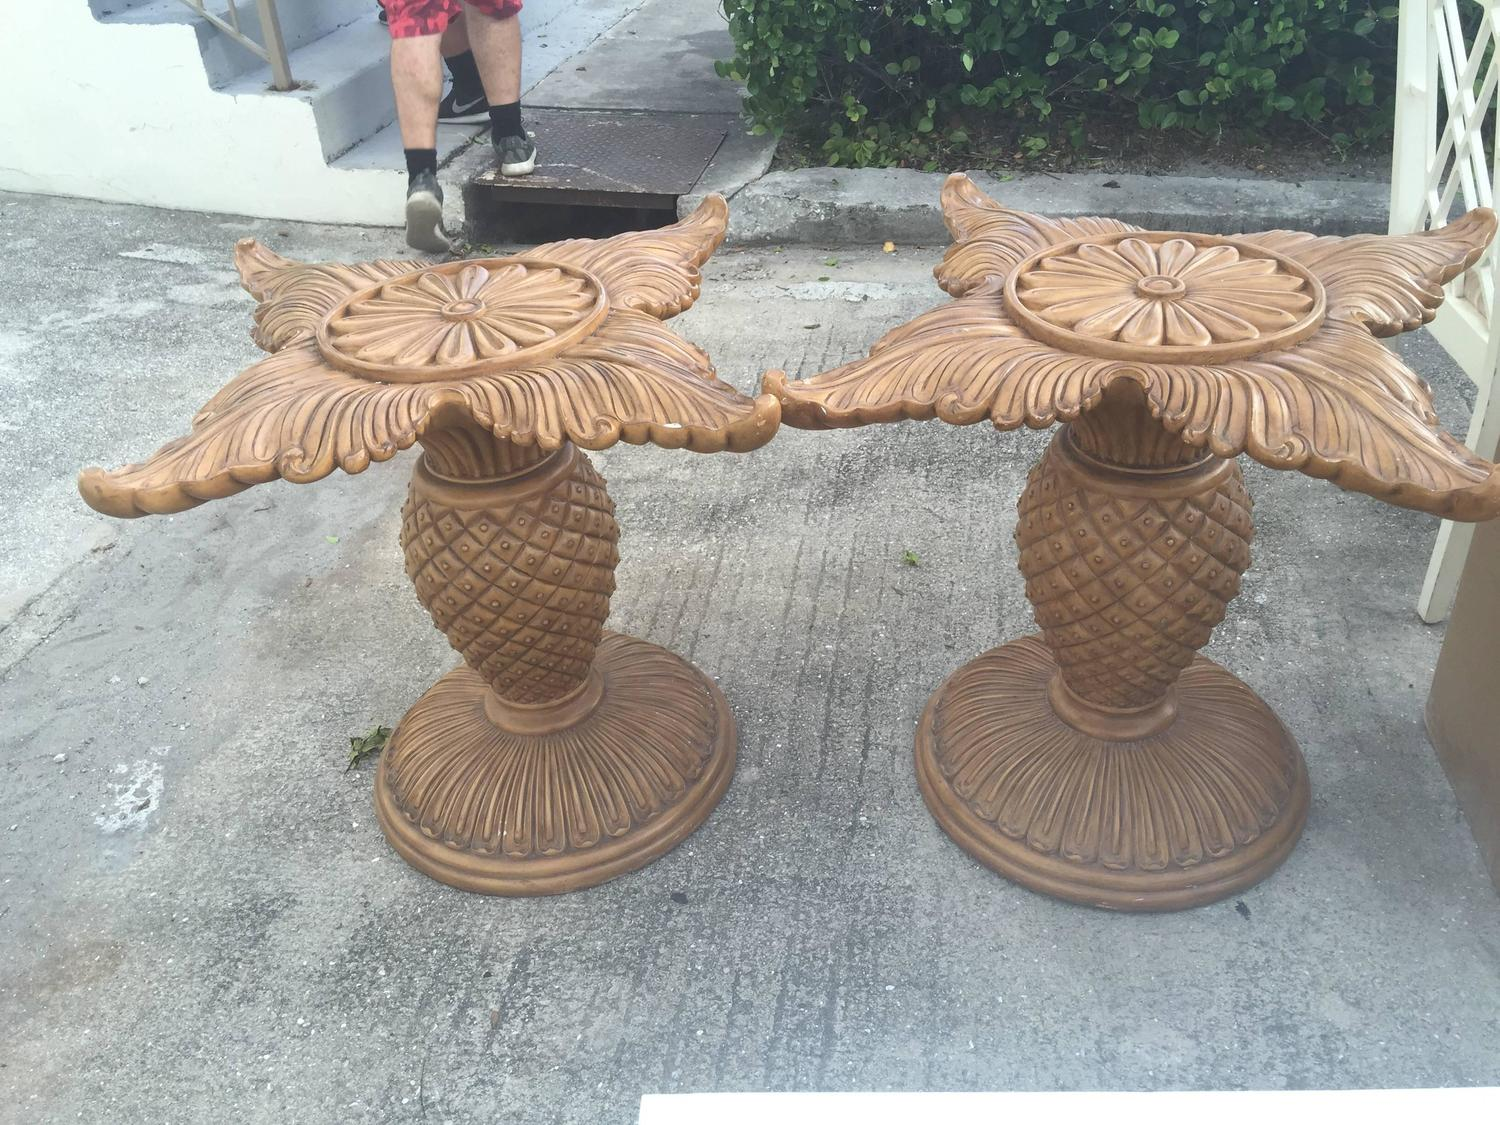 Pair of Wood Carved Pineapple Dining Table or Desk Bases  : imagez from www.1stdibs.com size 1500 x 1125 jpeg 290kB